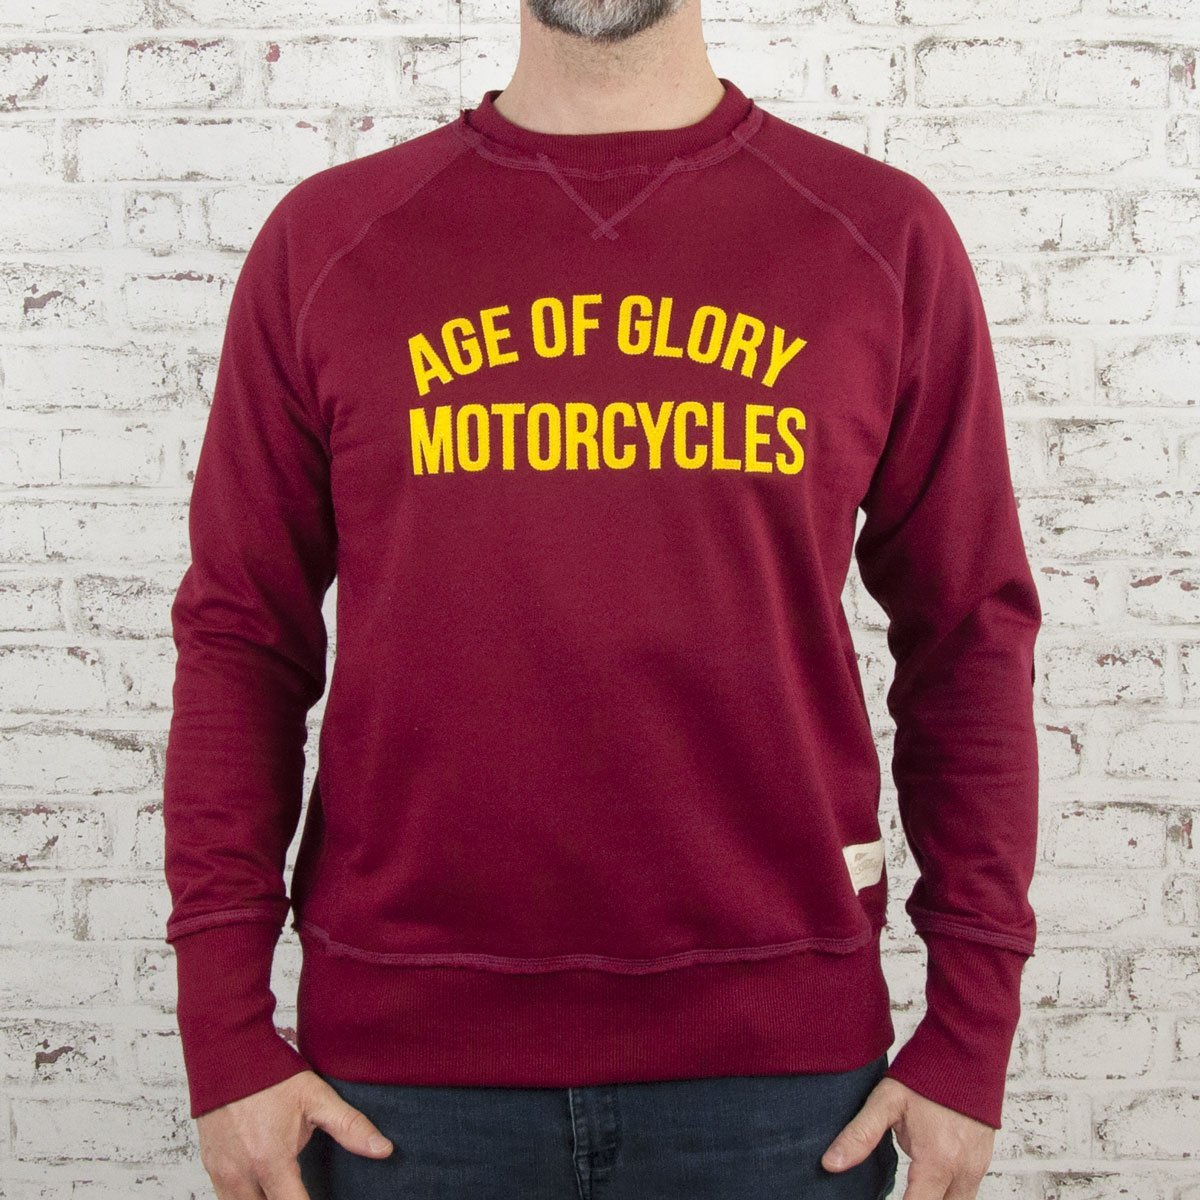 Age of Glory - Age of Glory Vintage Raglan Sweat top in Burgundy - Hoodies | Sweatshirts | Wind Stoppers - Salt Flats Clothing